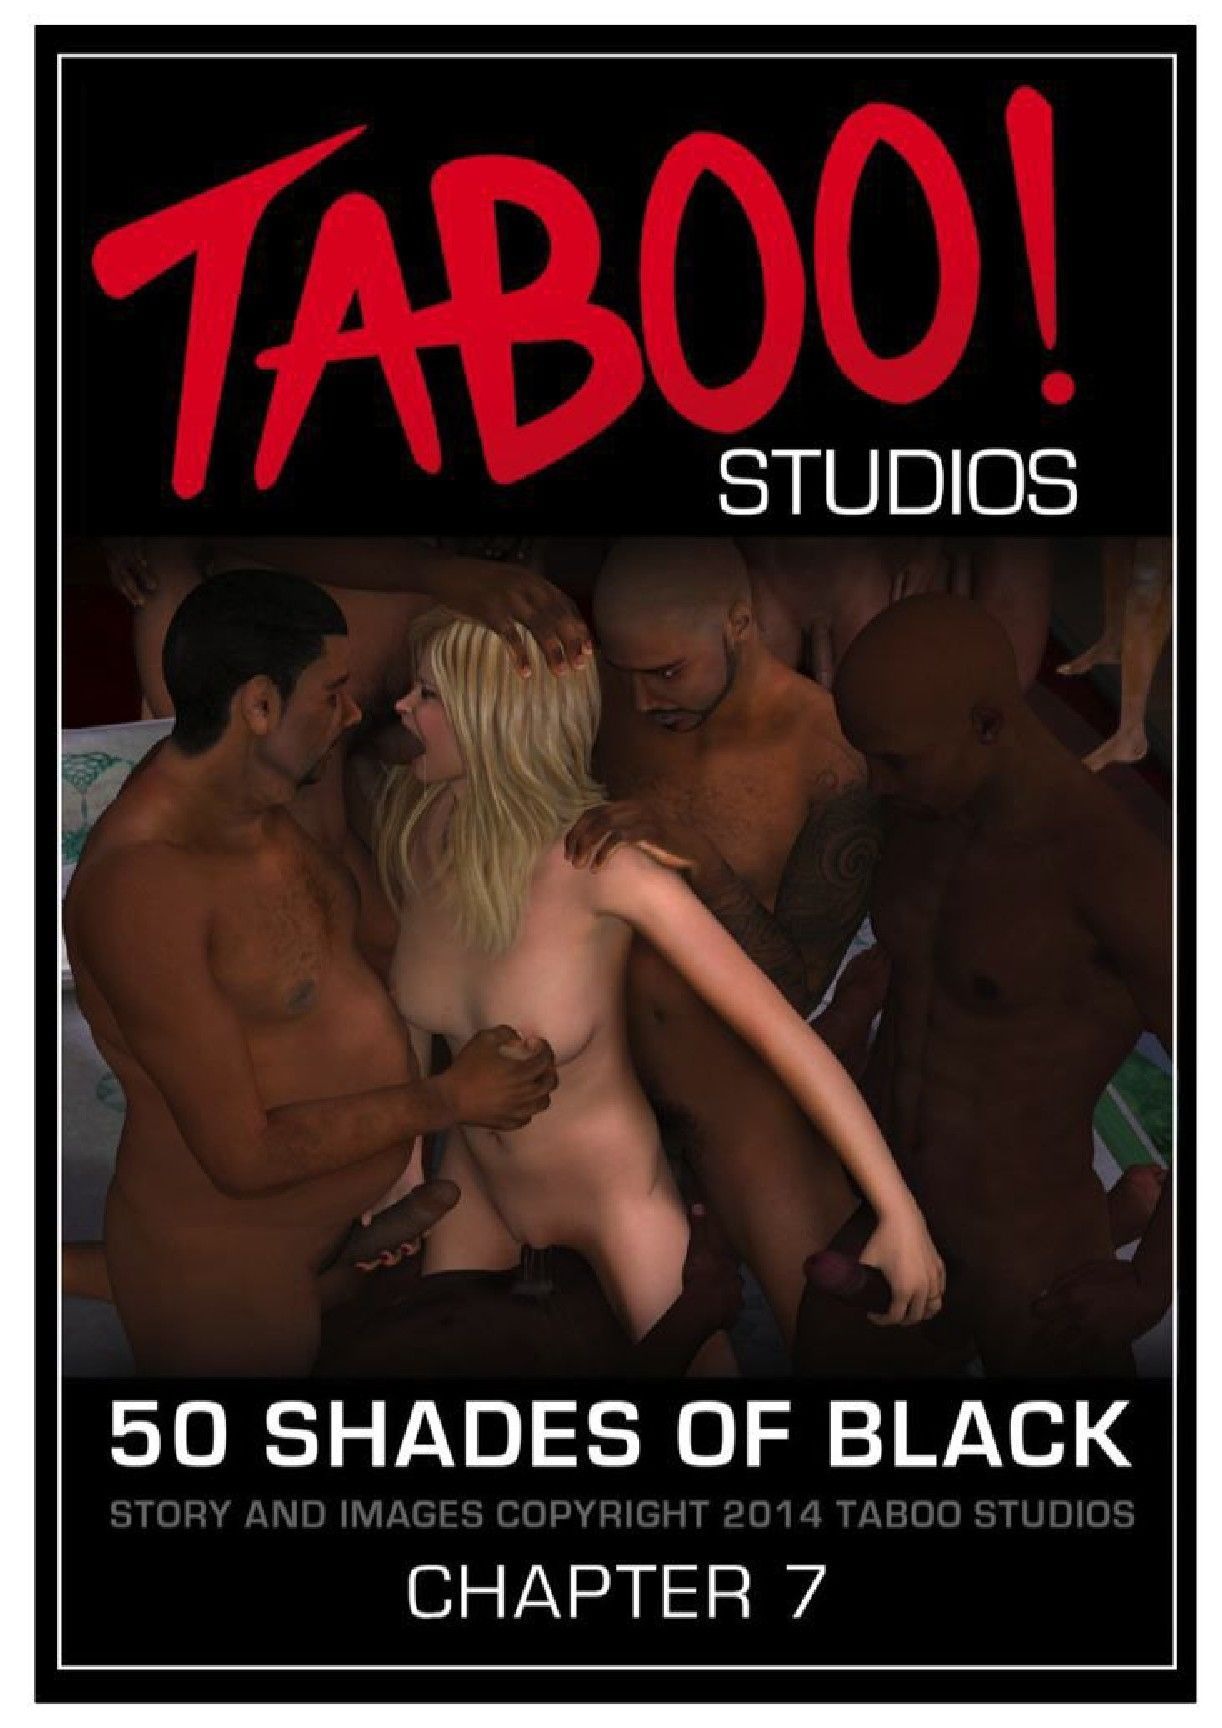 50 Shades of Black Chapter 7